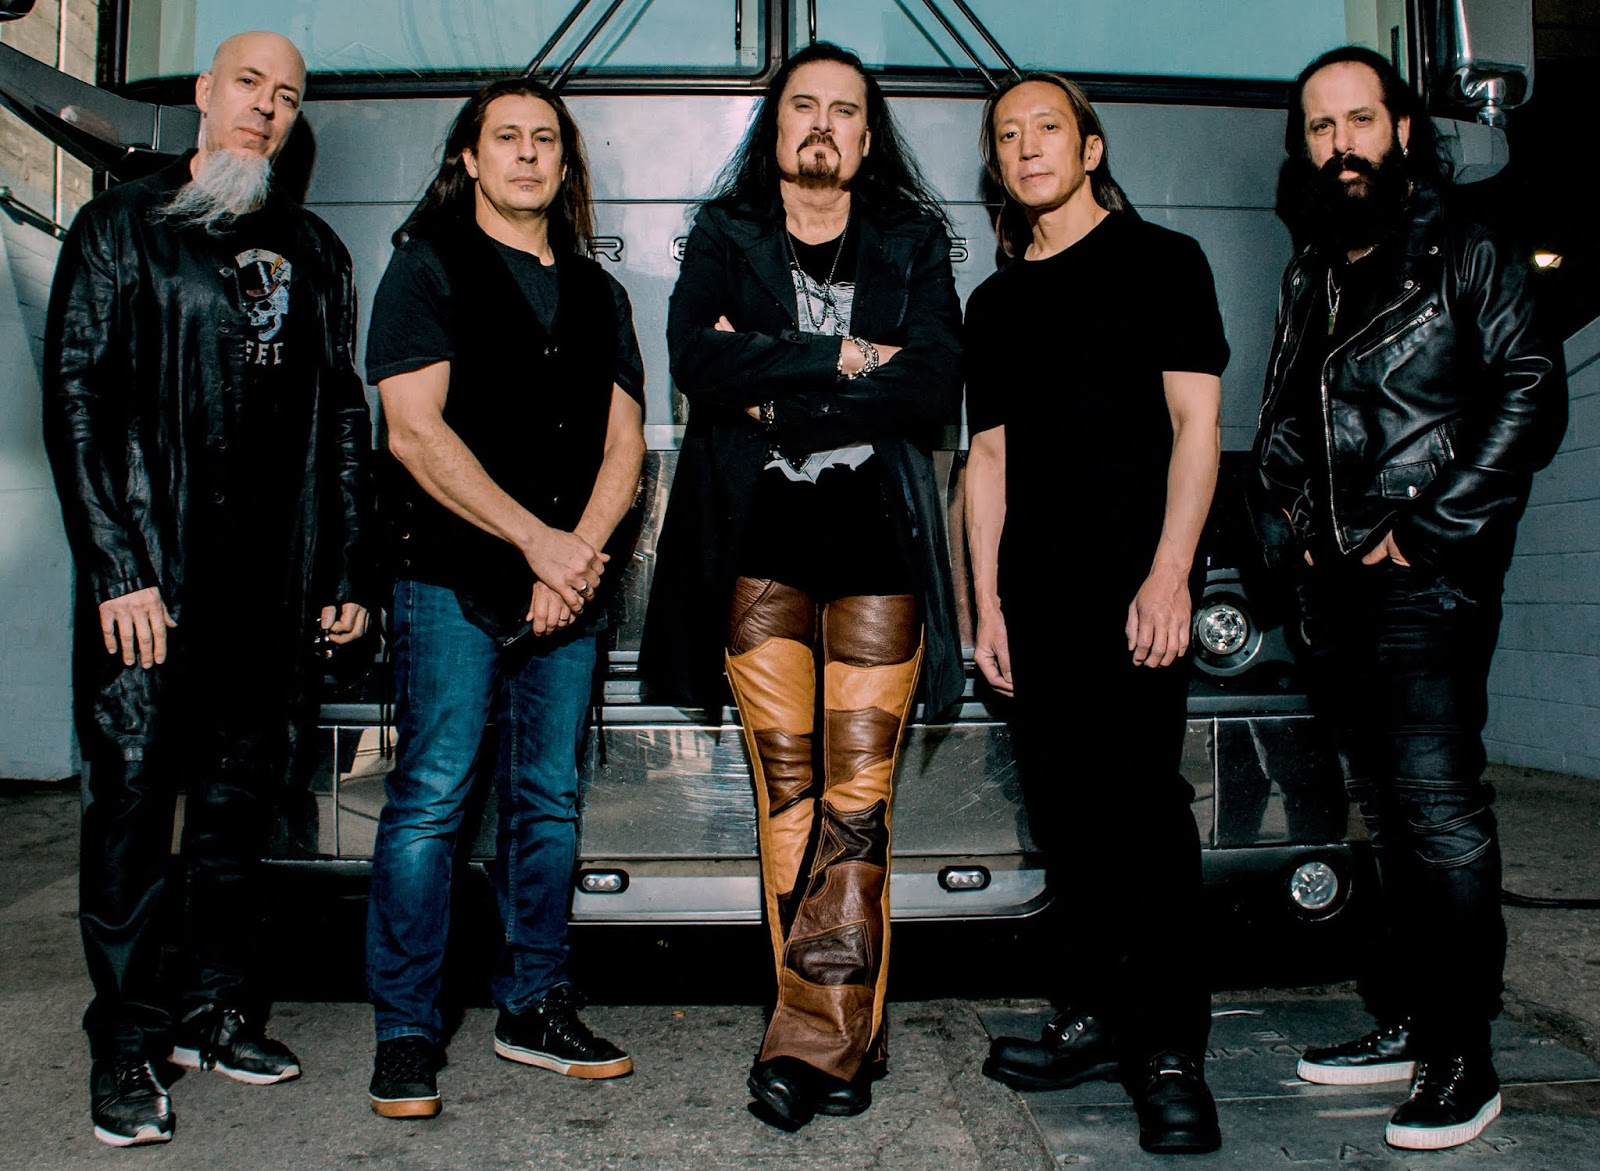 Dream theater photo band